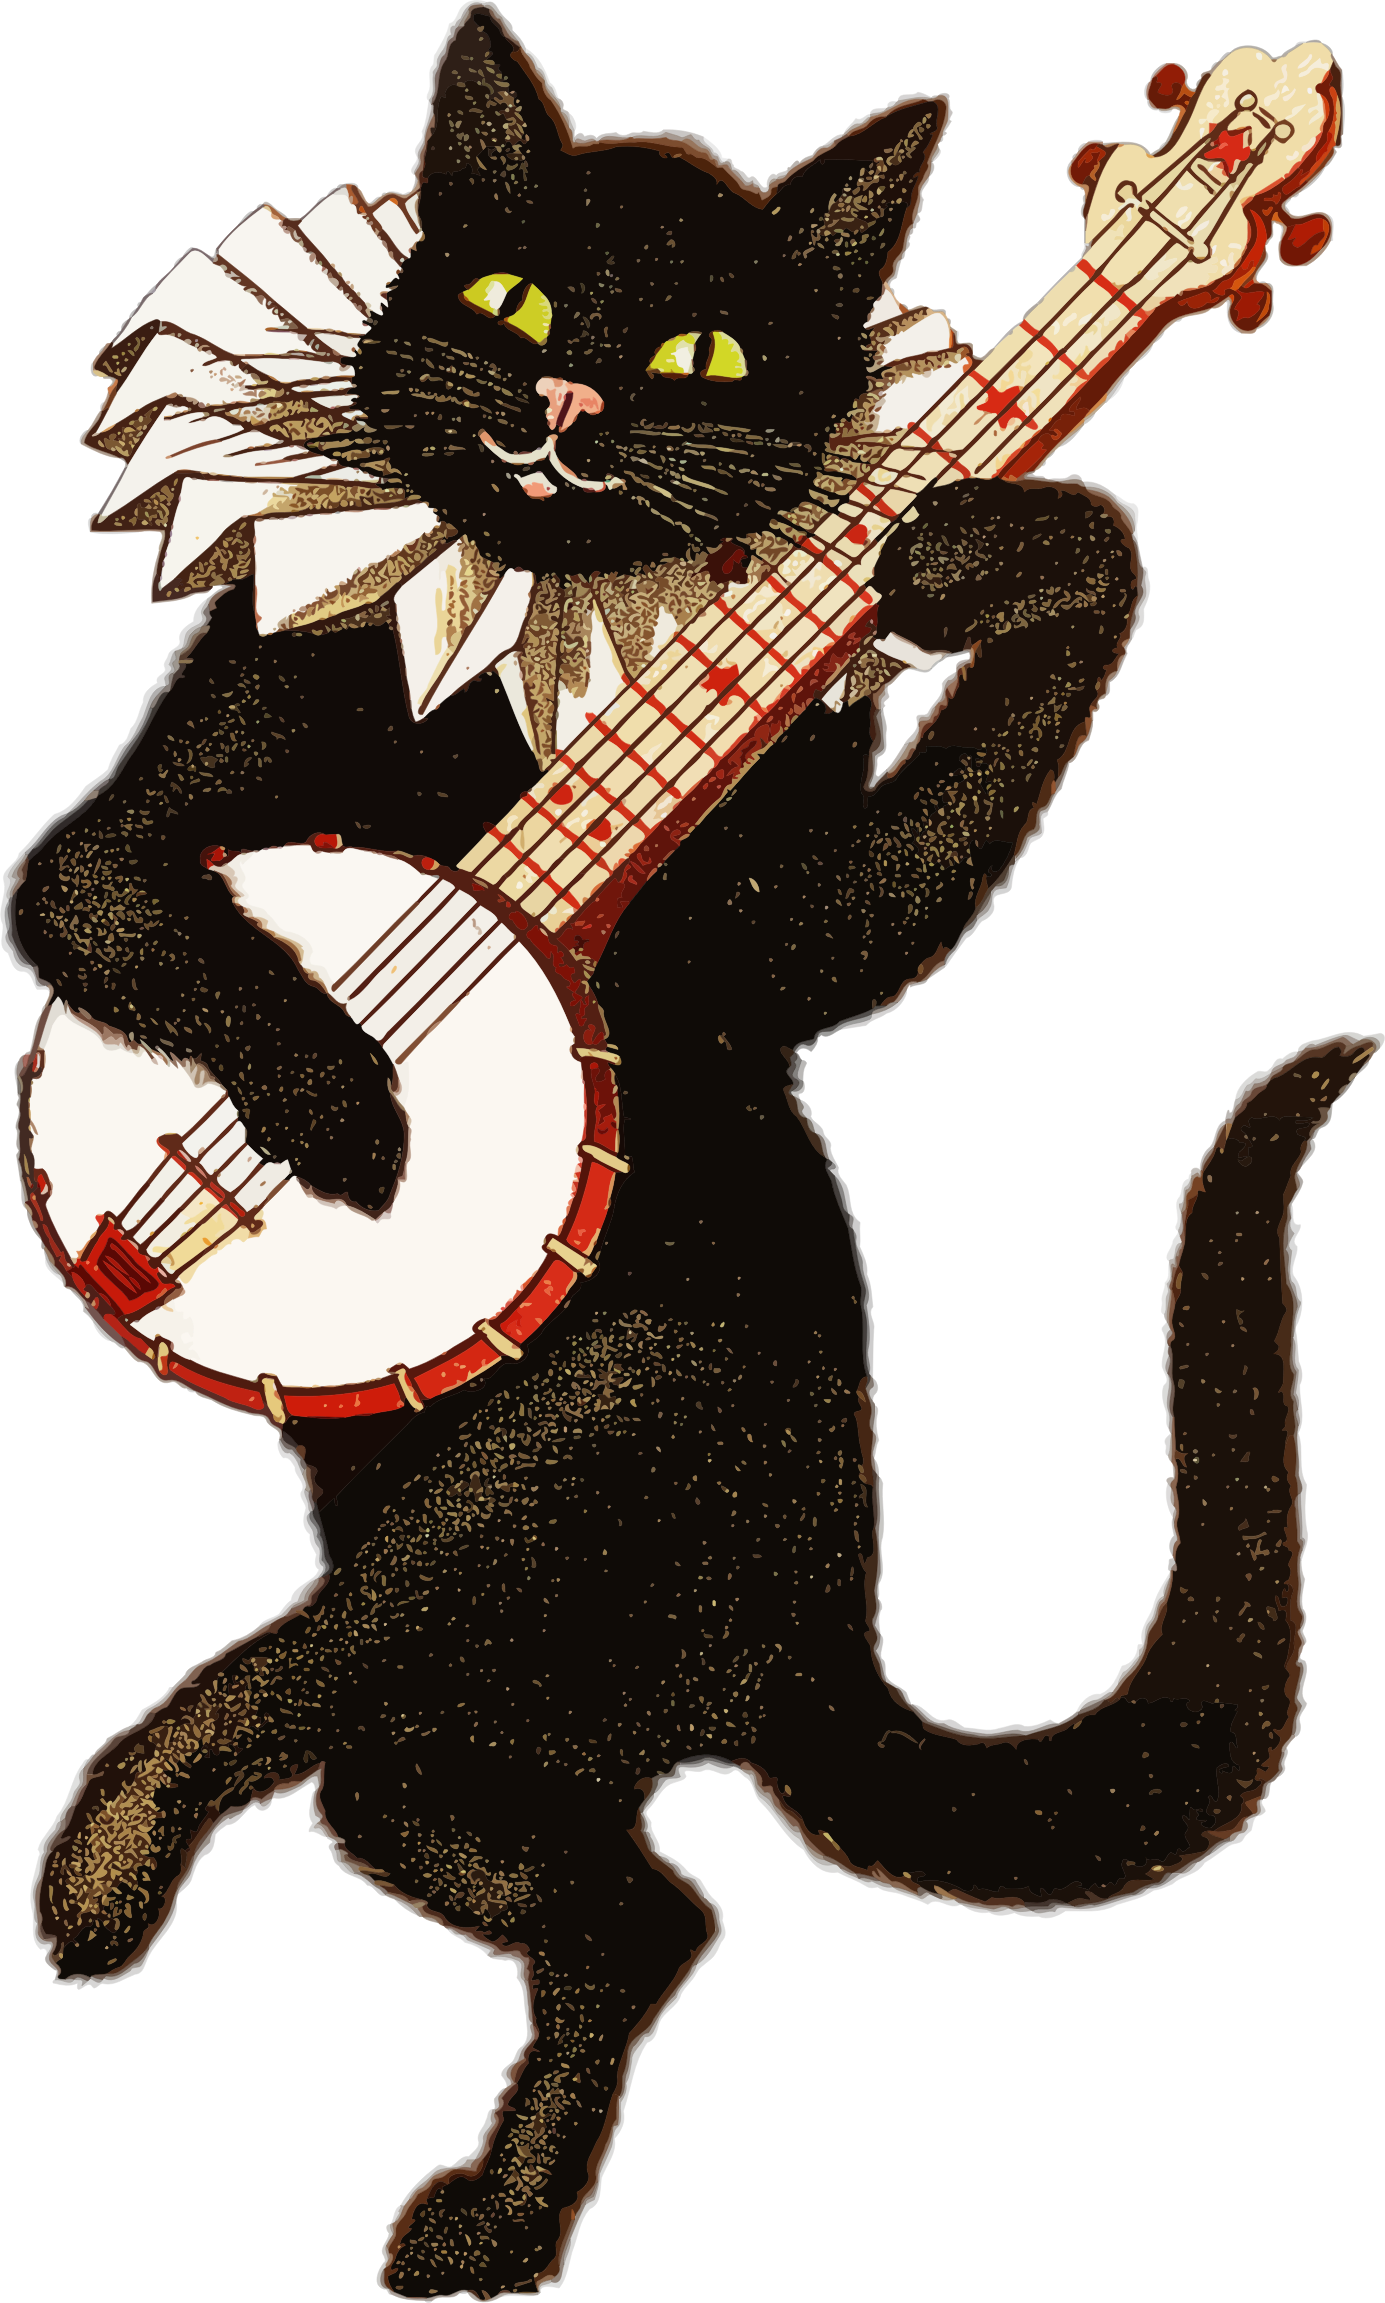 Vintage animal playing music. Clipart mountain retro